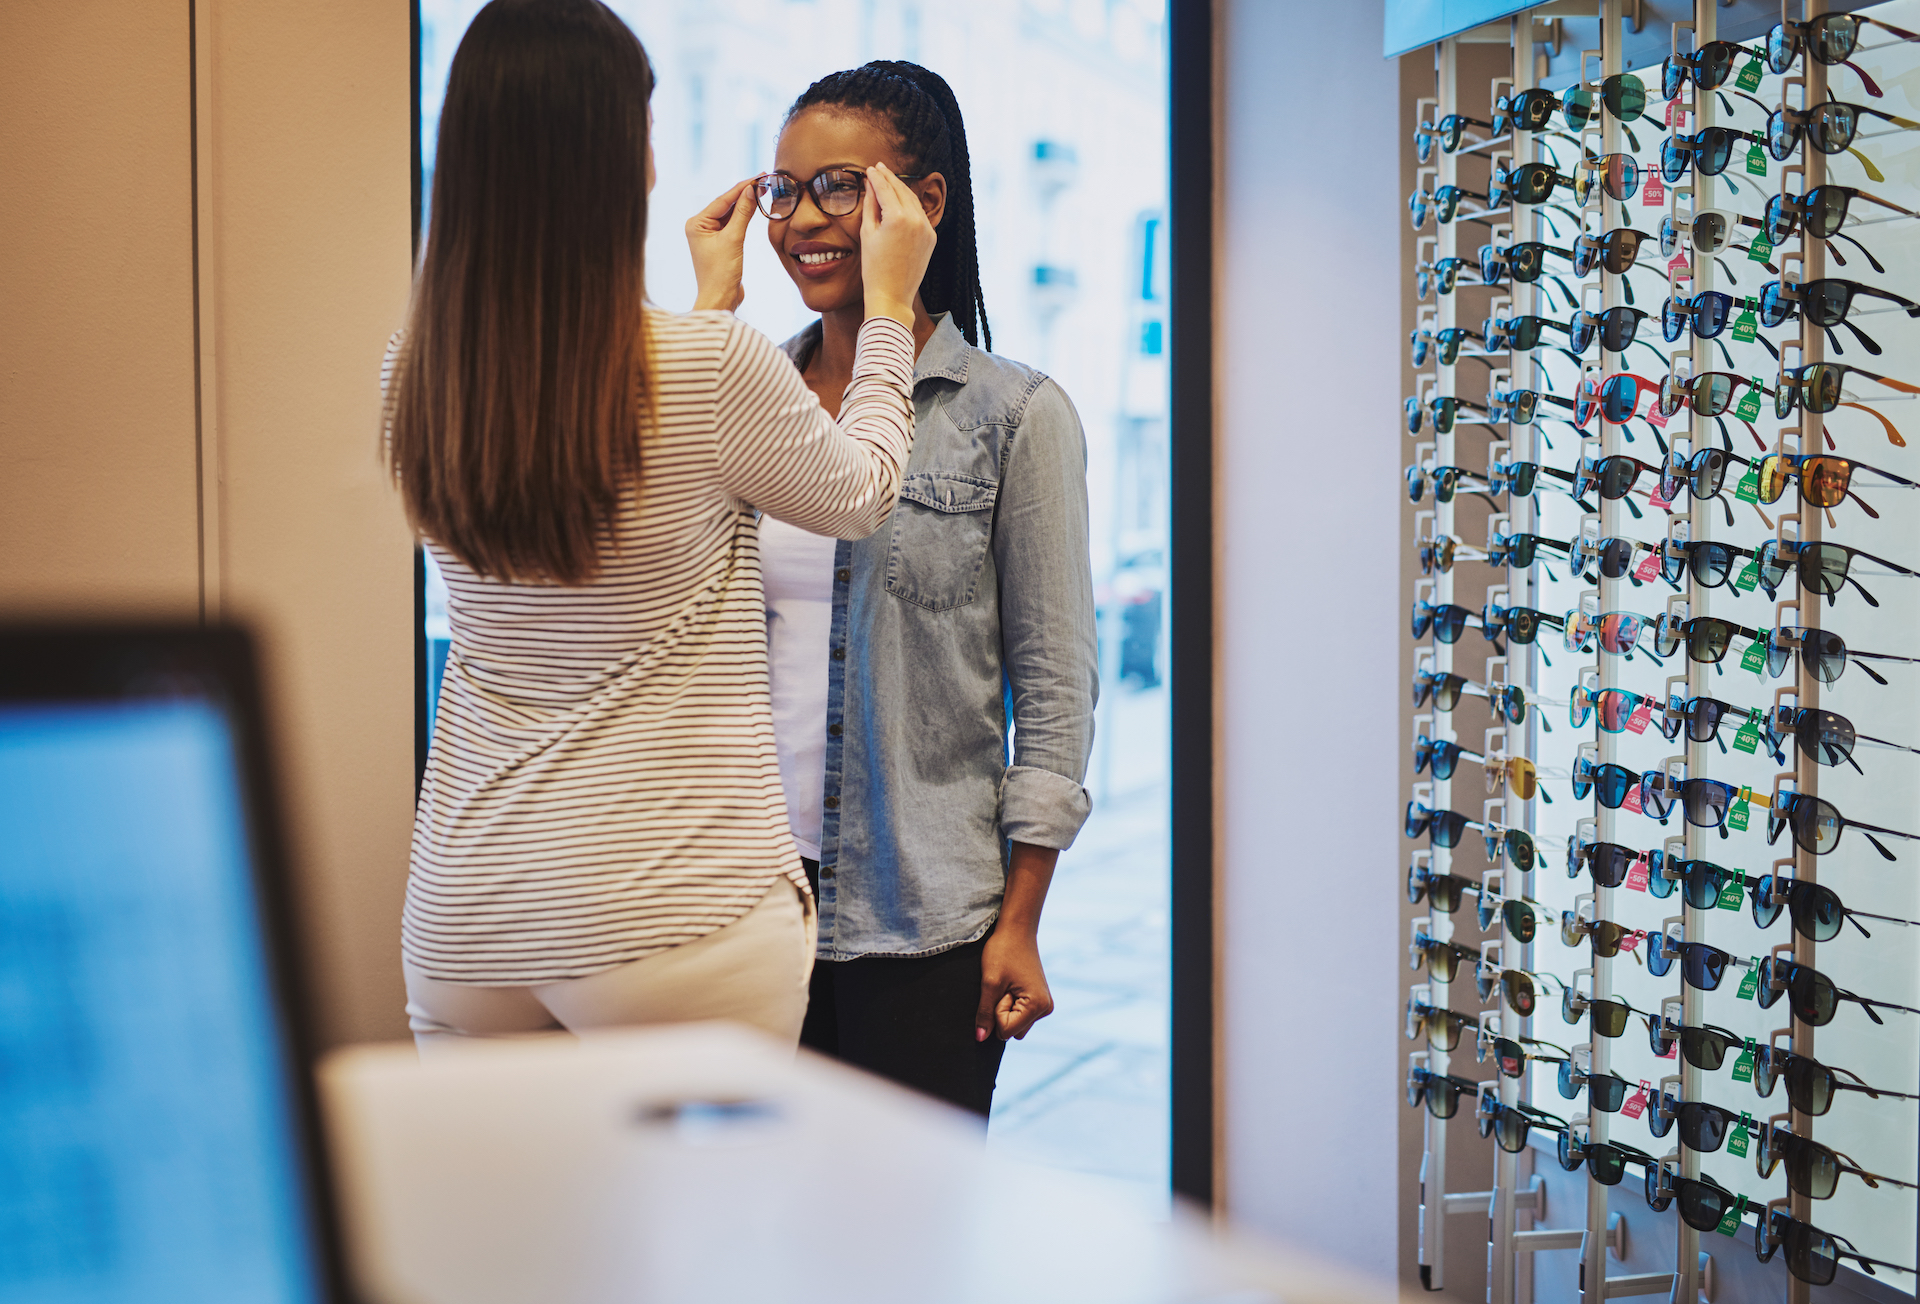 Optometrist helping a patient to select eyeglasses